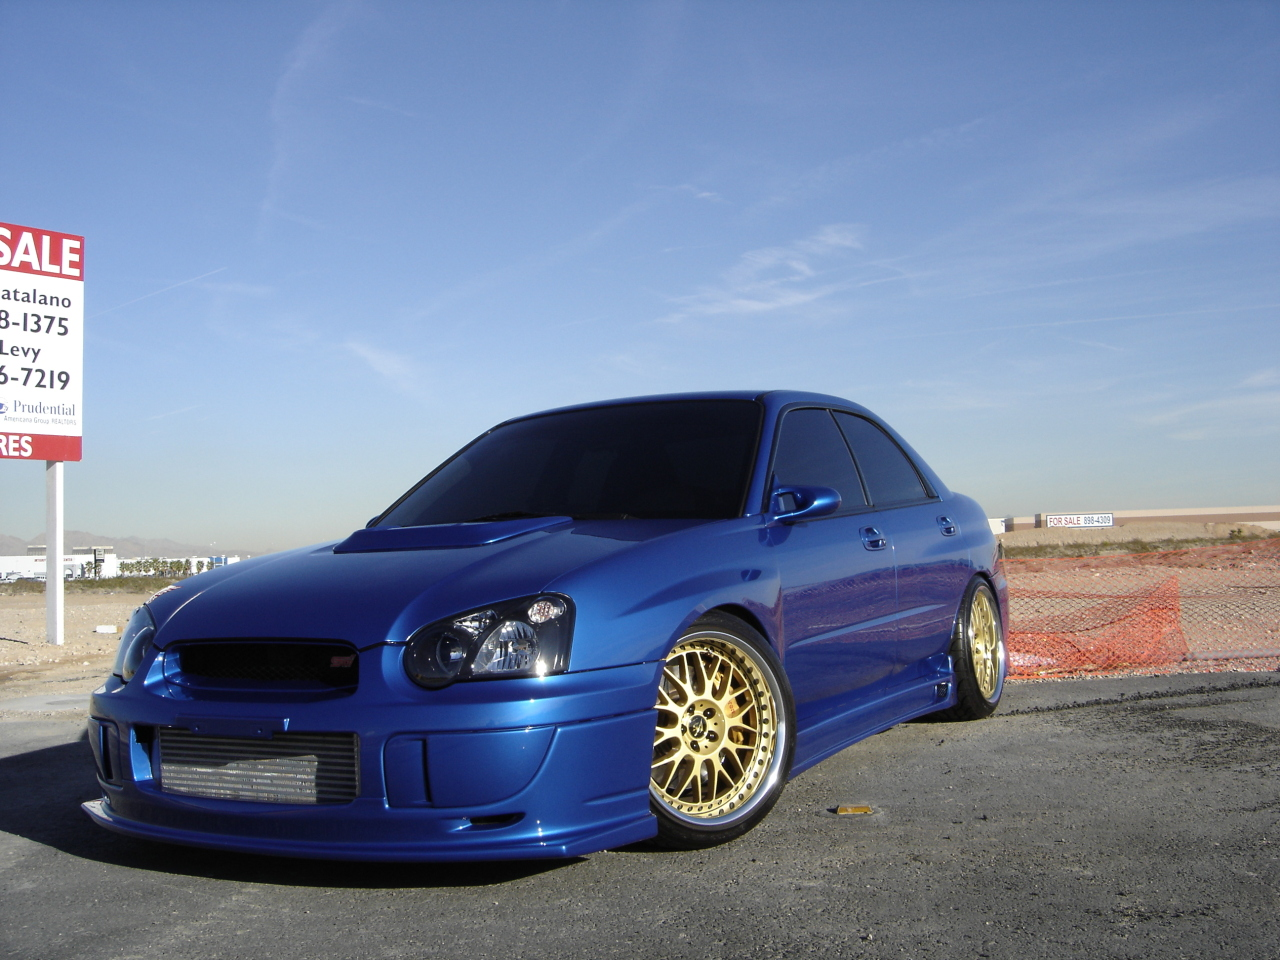 subaru impreza wrx sti custom wheels work wheels vs xx. Black Bedroom Furniture Sets. Home Design Ideas